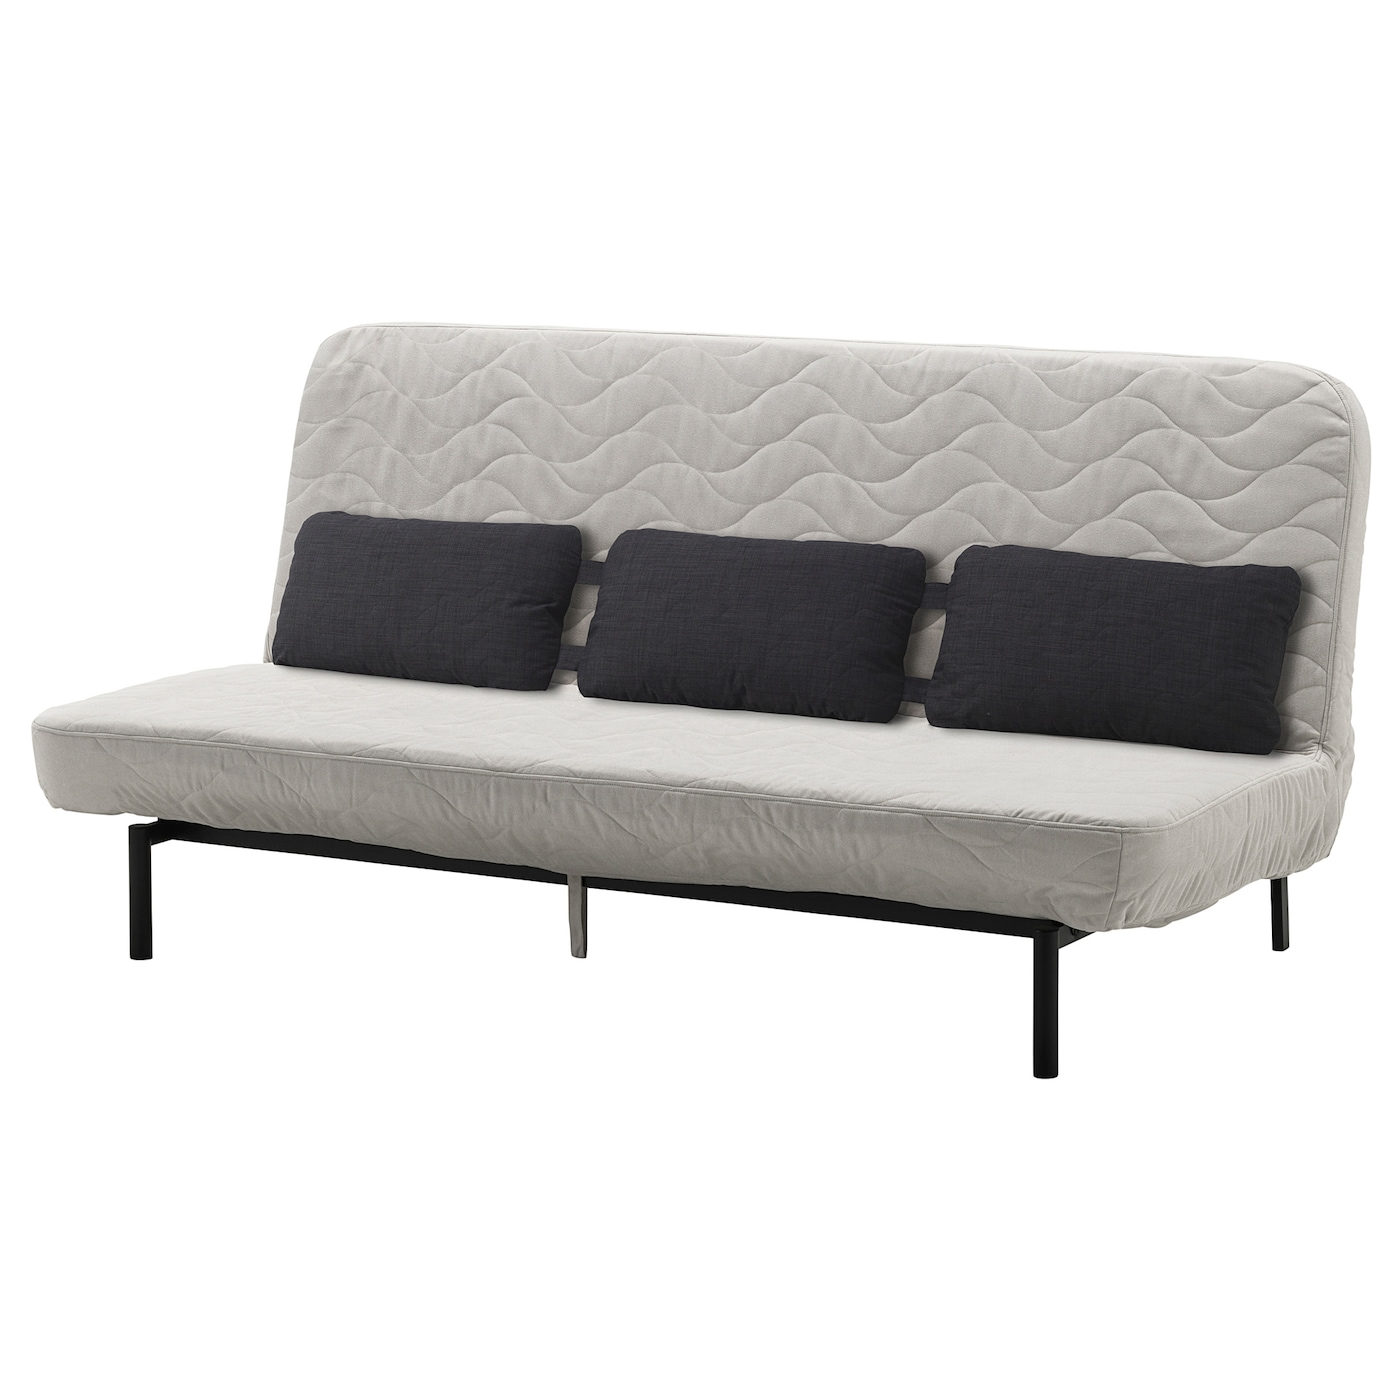 corner sofa beds futons chair beds ikea. Black Bedroom Furniture Sets. Home Design Ideas